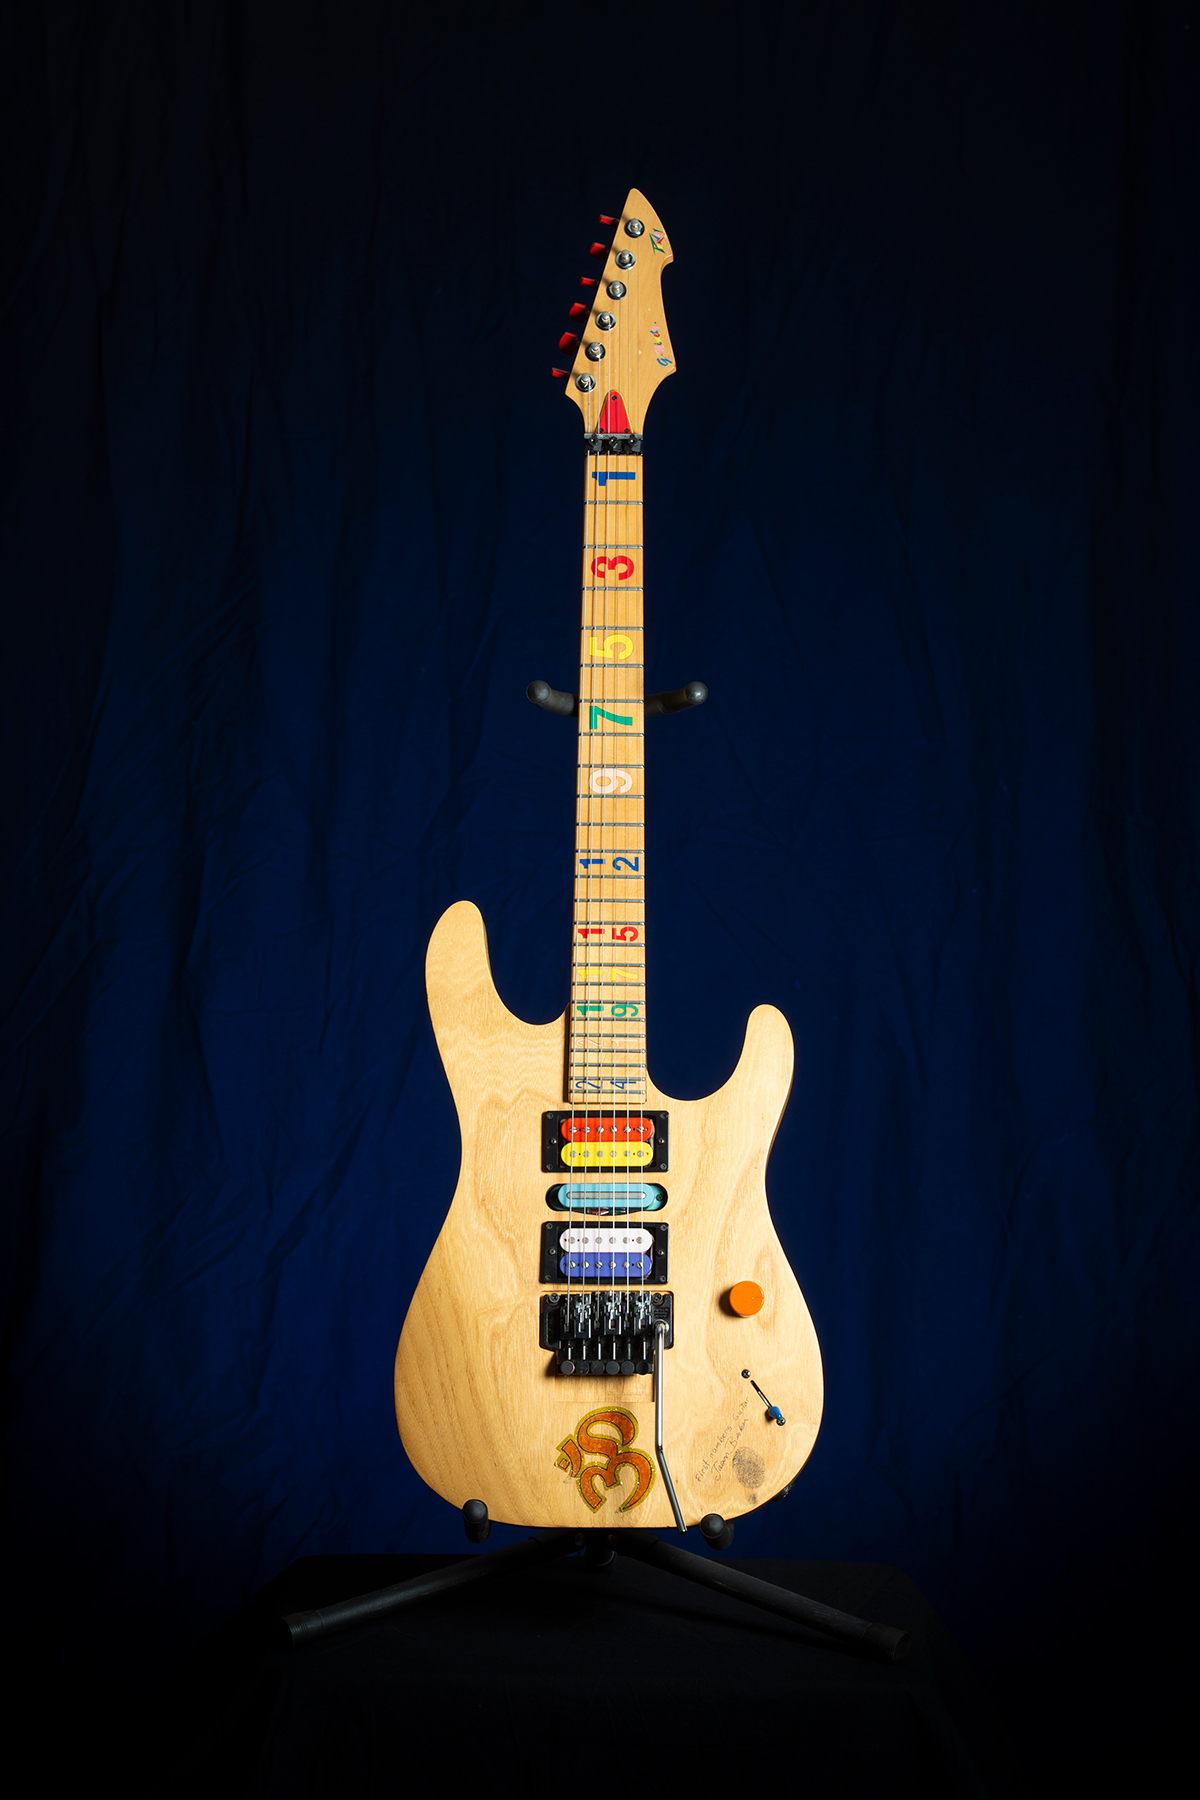 Jason Becker's Peavey 'Numbers' Prototype Guitar - Photo by Stephanie Cabral